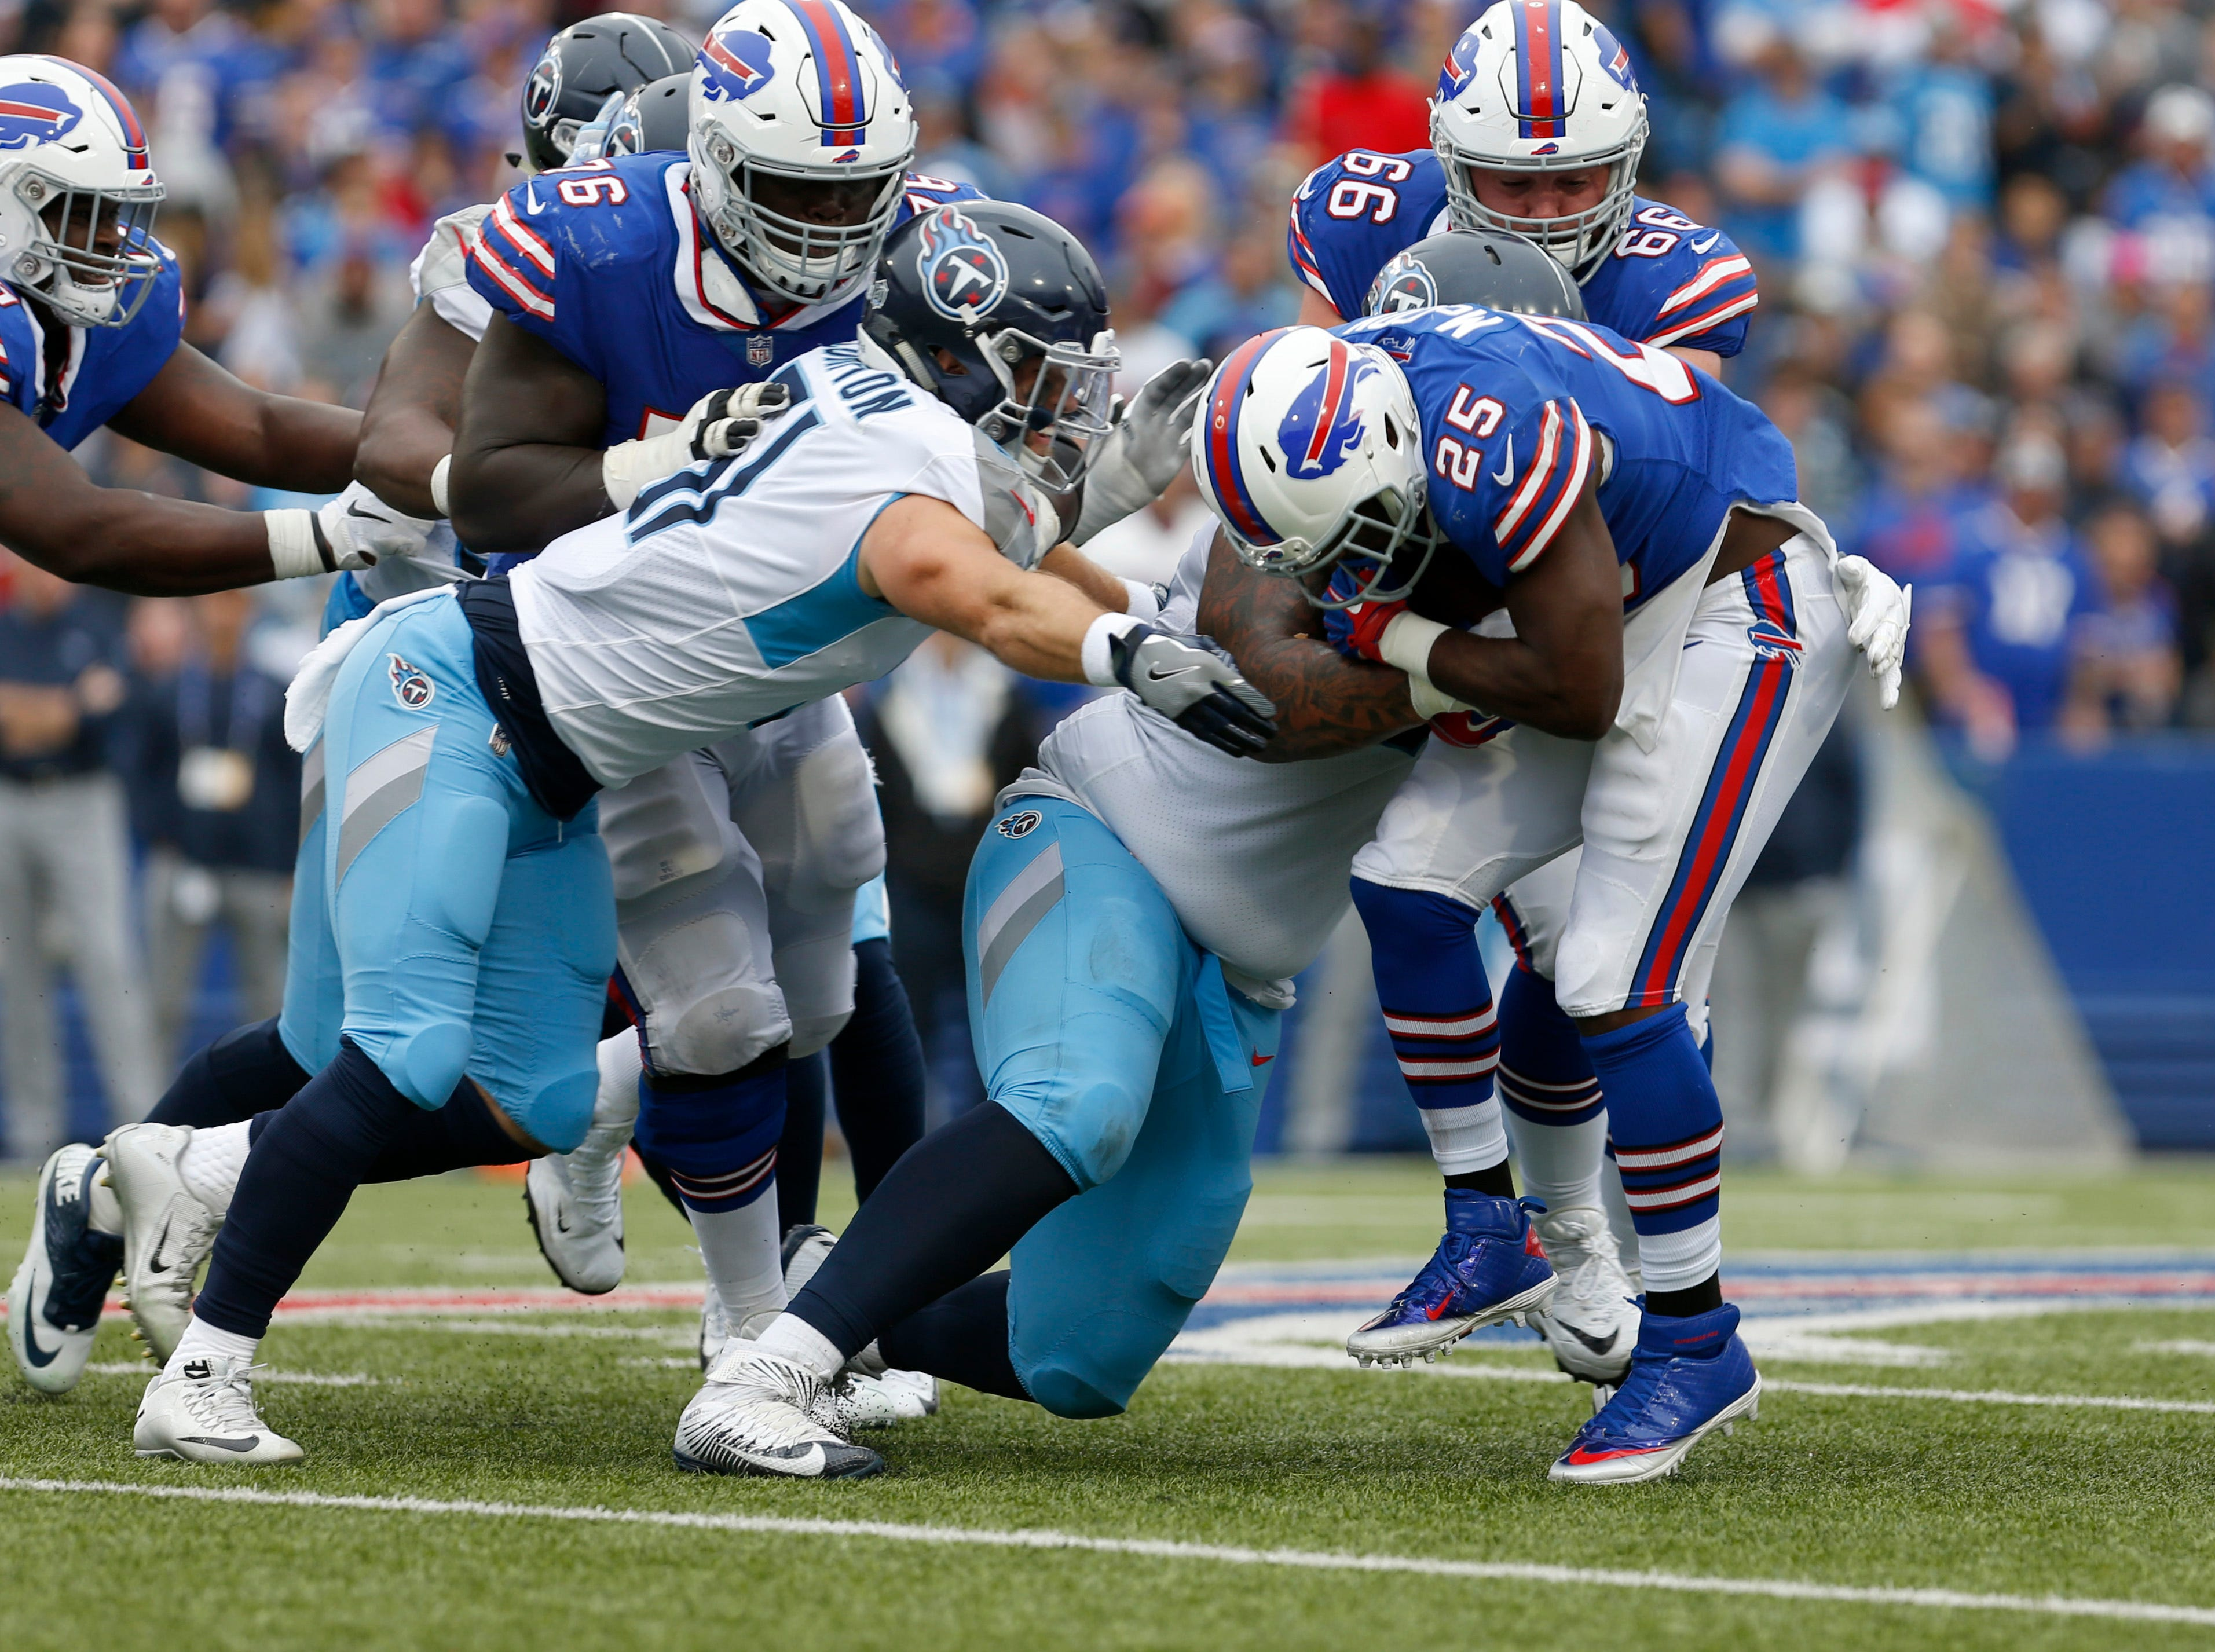 Oct 7, 2018; Orchard Park, NY, USA; Buffalo Bills running back LeSean McCoy (25) is tackled by Tennessee Titans linebacker Will Compton (51) during the second half at New Era Field.